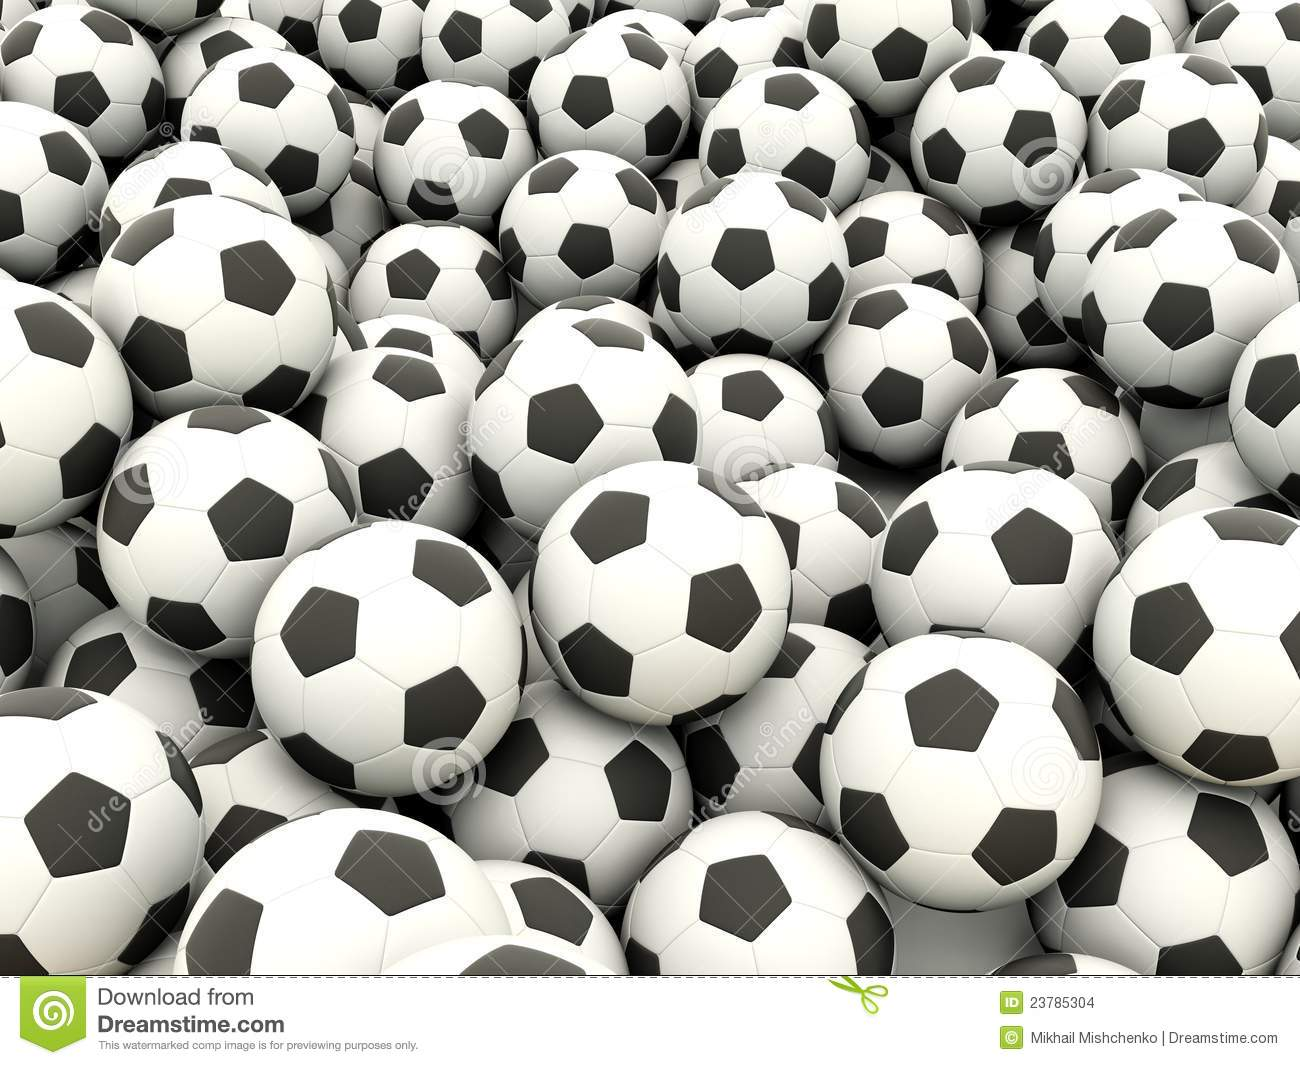 Football background. Lot of black and white balls.